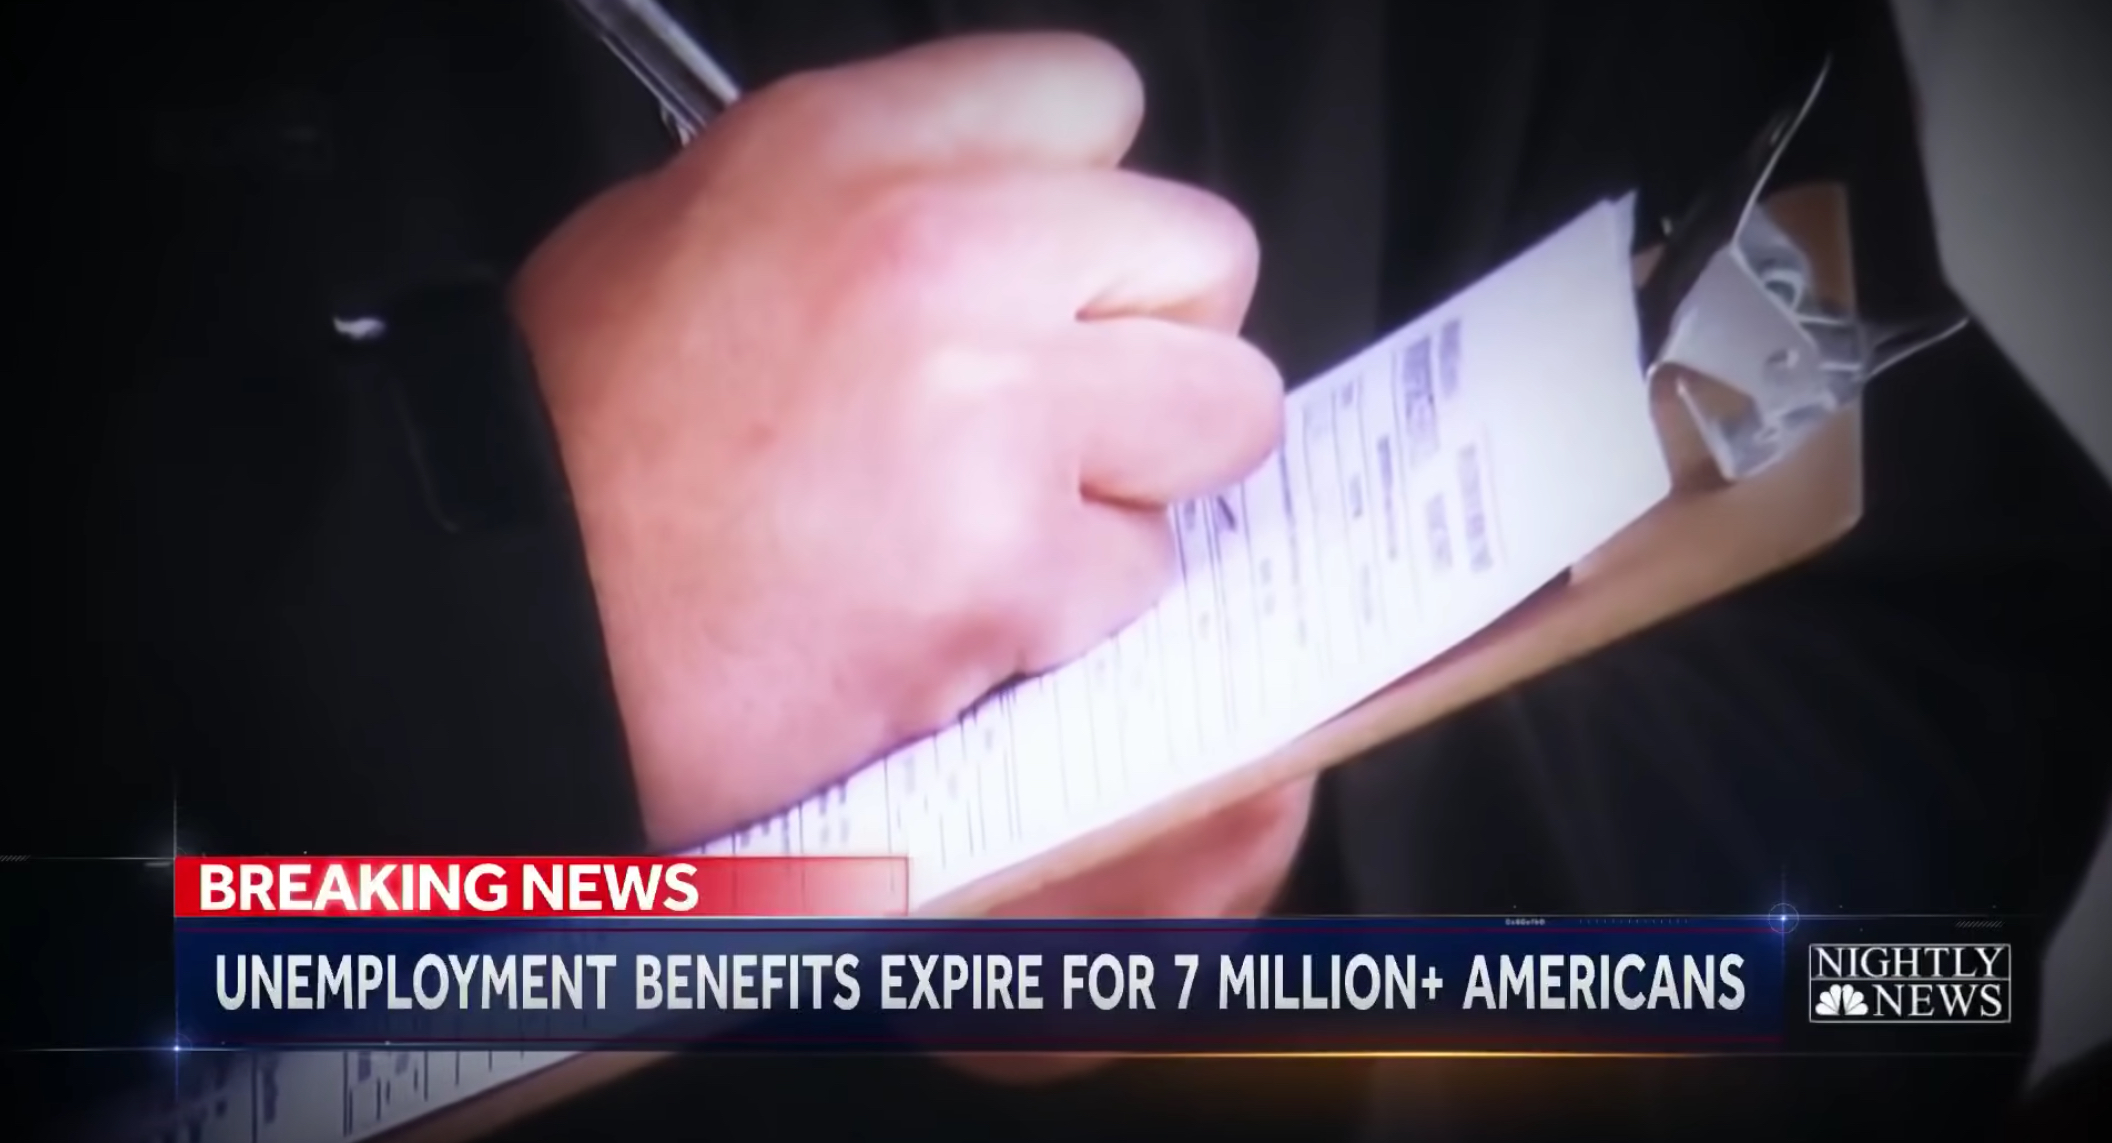 Screenshot from NBC News story about unemployment benefits ending.